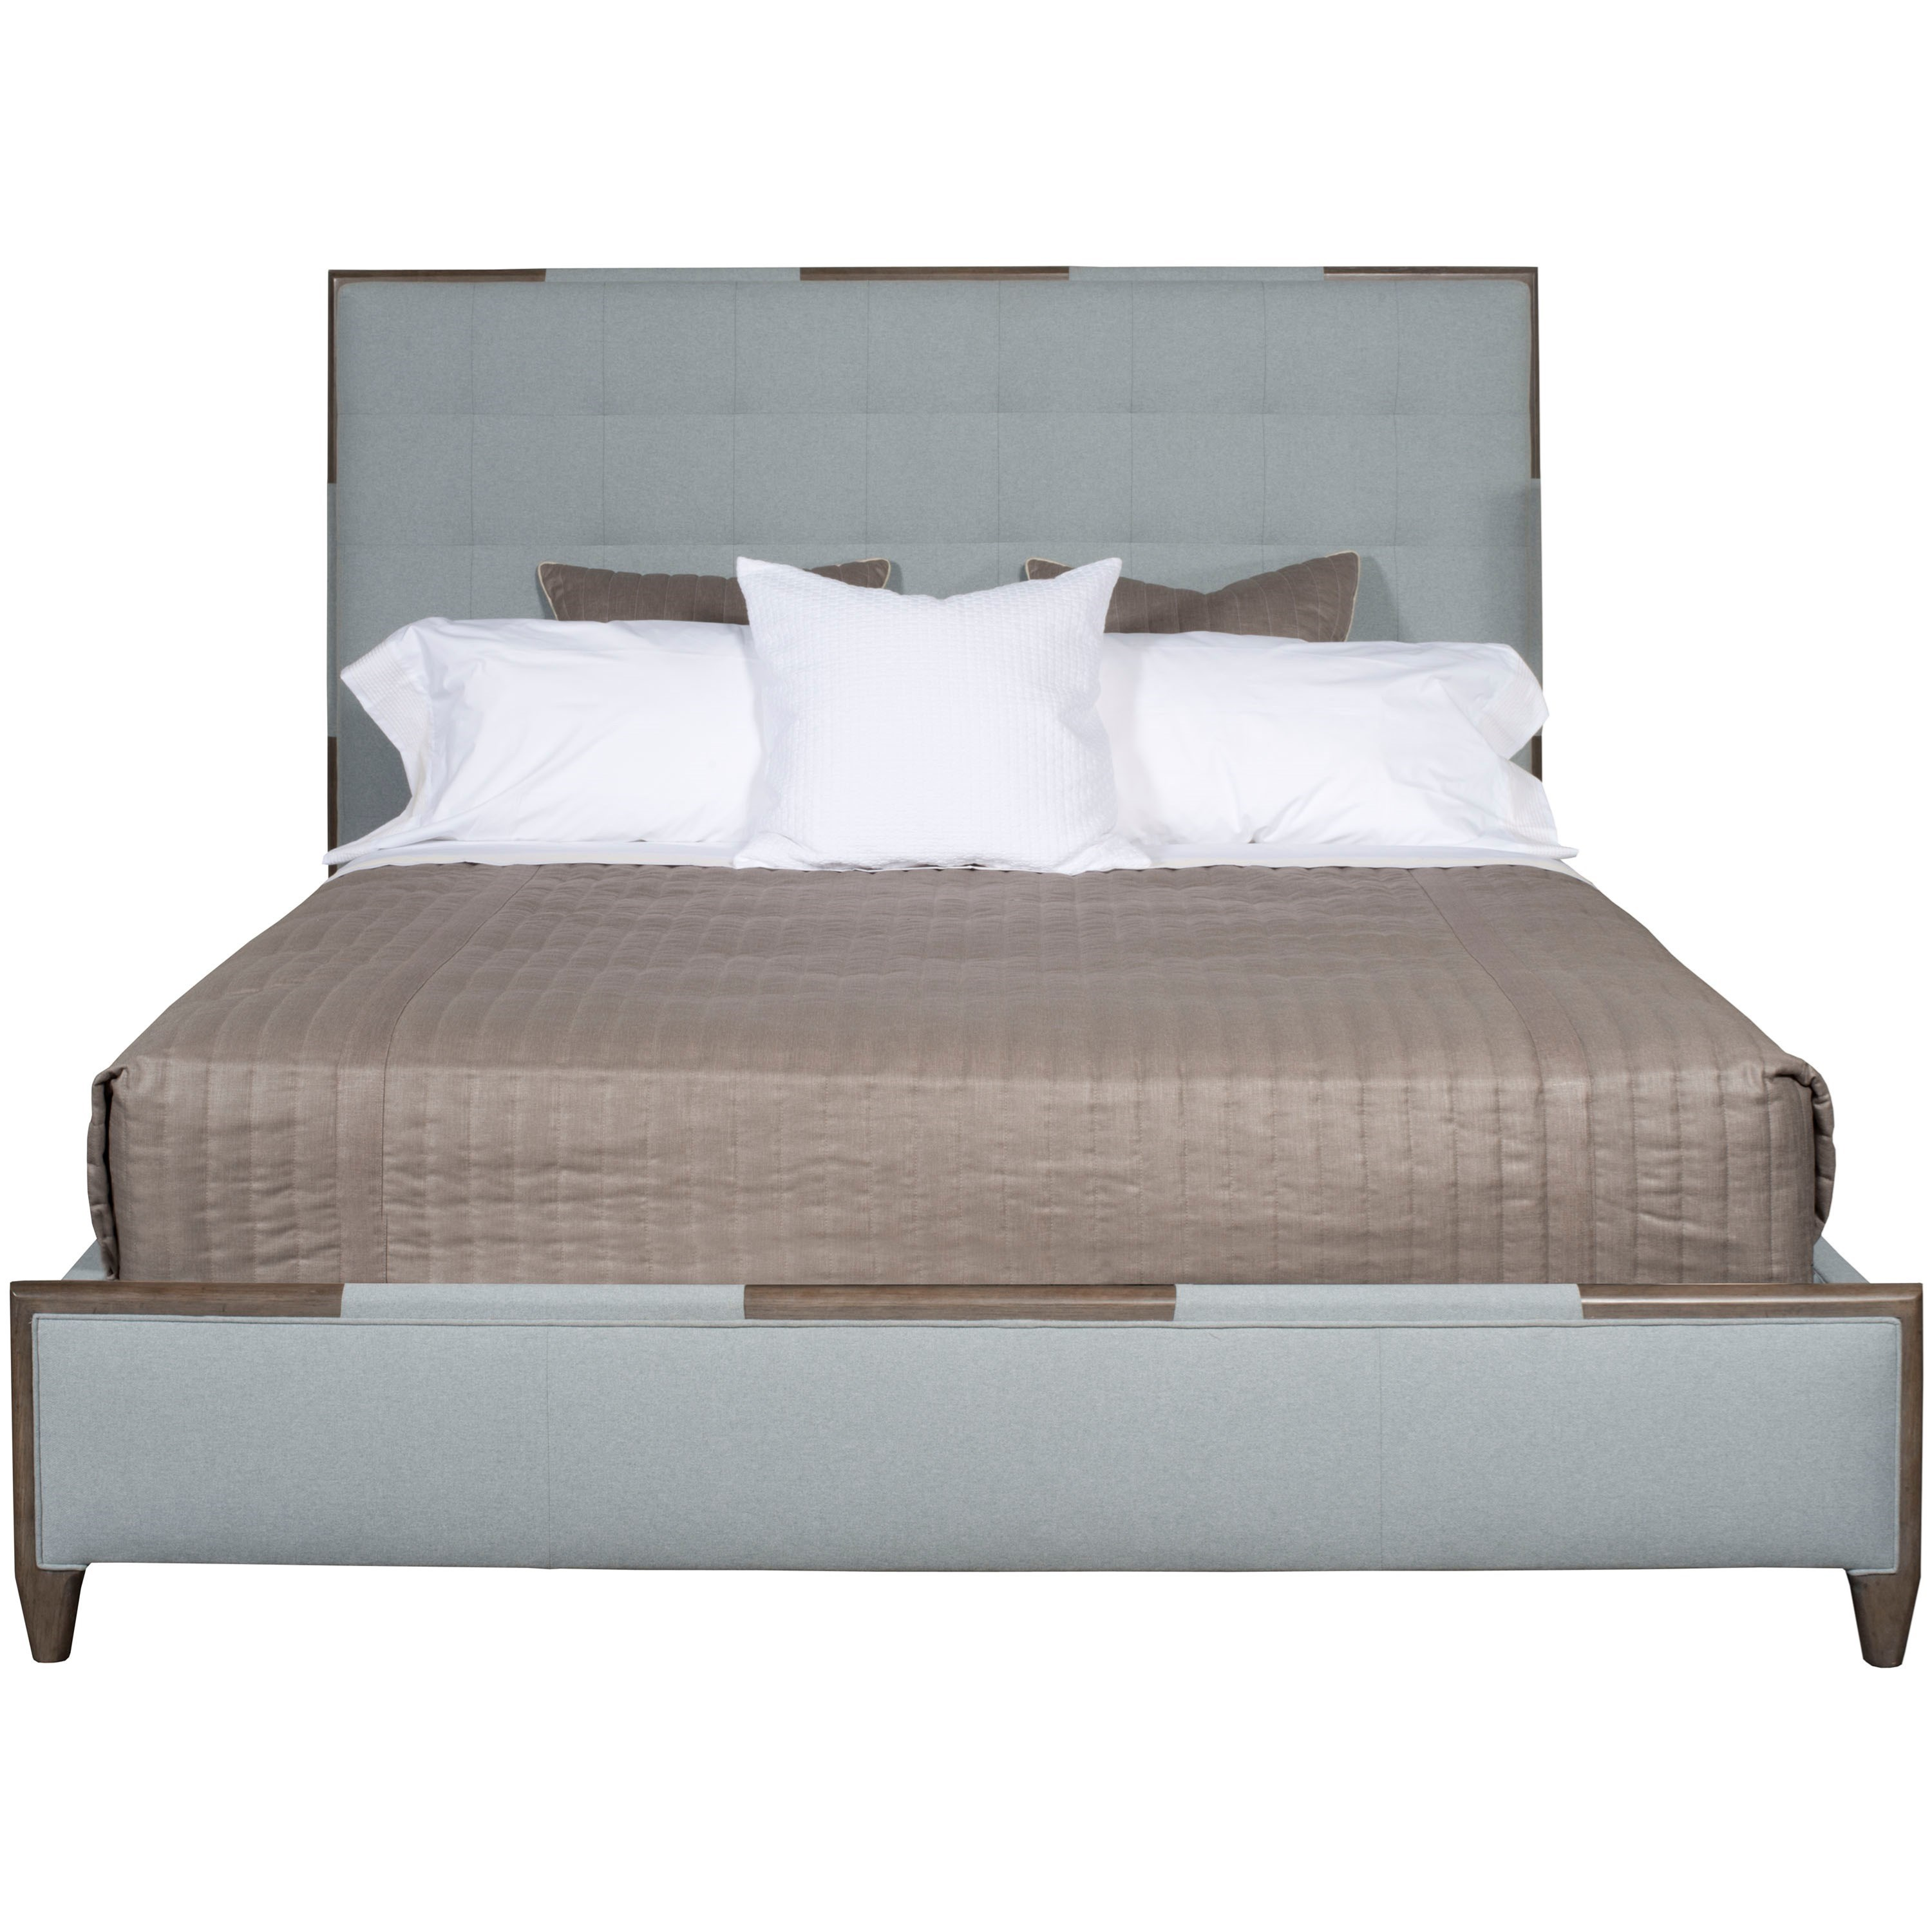 Chatfield by Thom Filicia Home King Upholstered Bed by Vanguard Furniture at Baer's Furniture